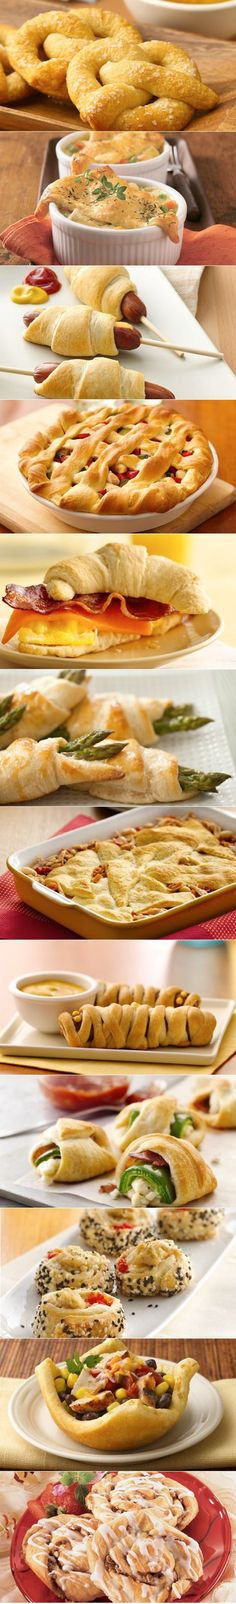 Got a can of crescent rolls? Look at all the cool stuff you can make!